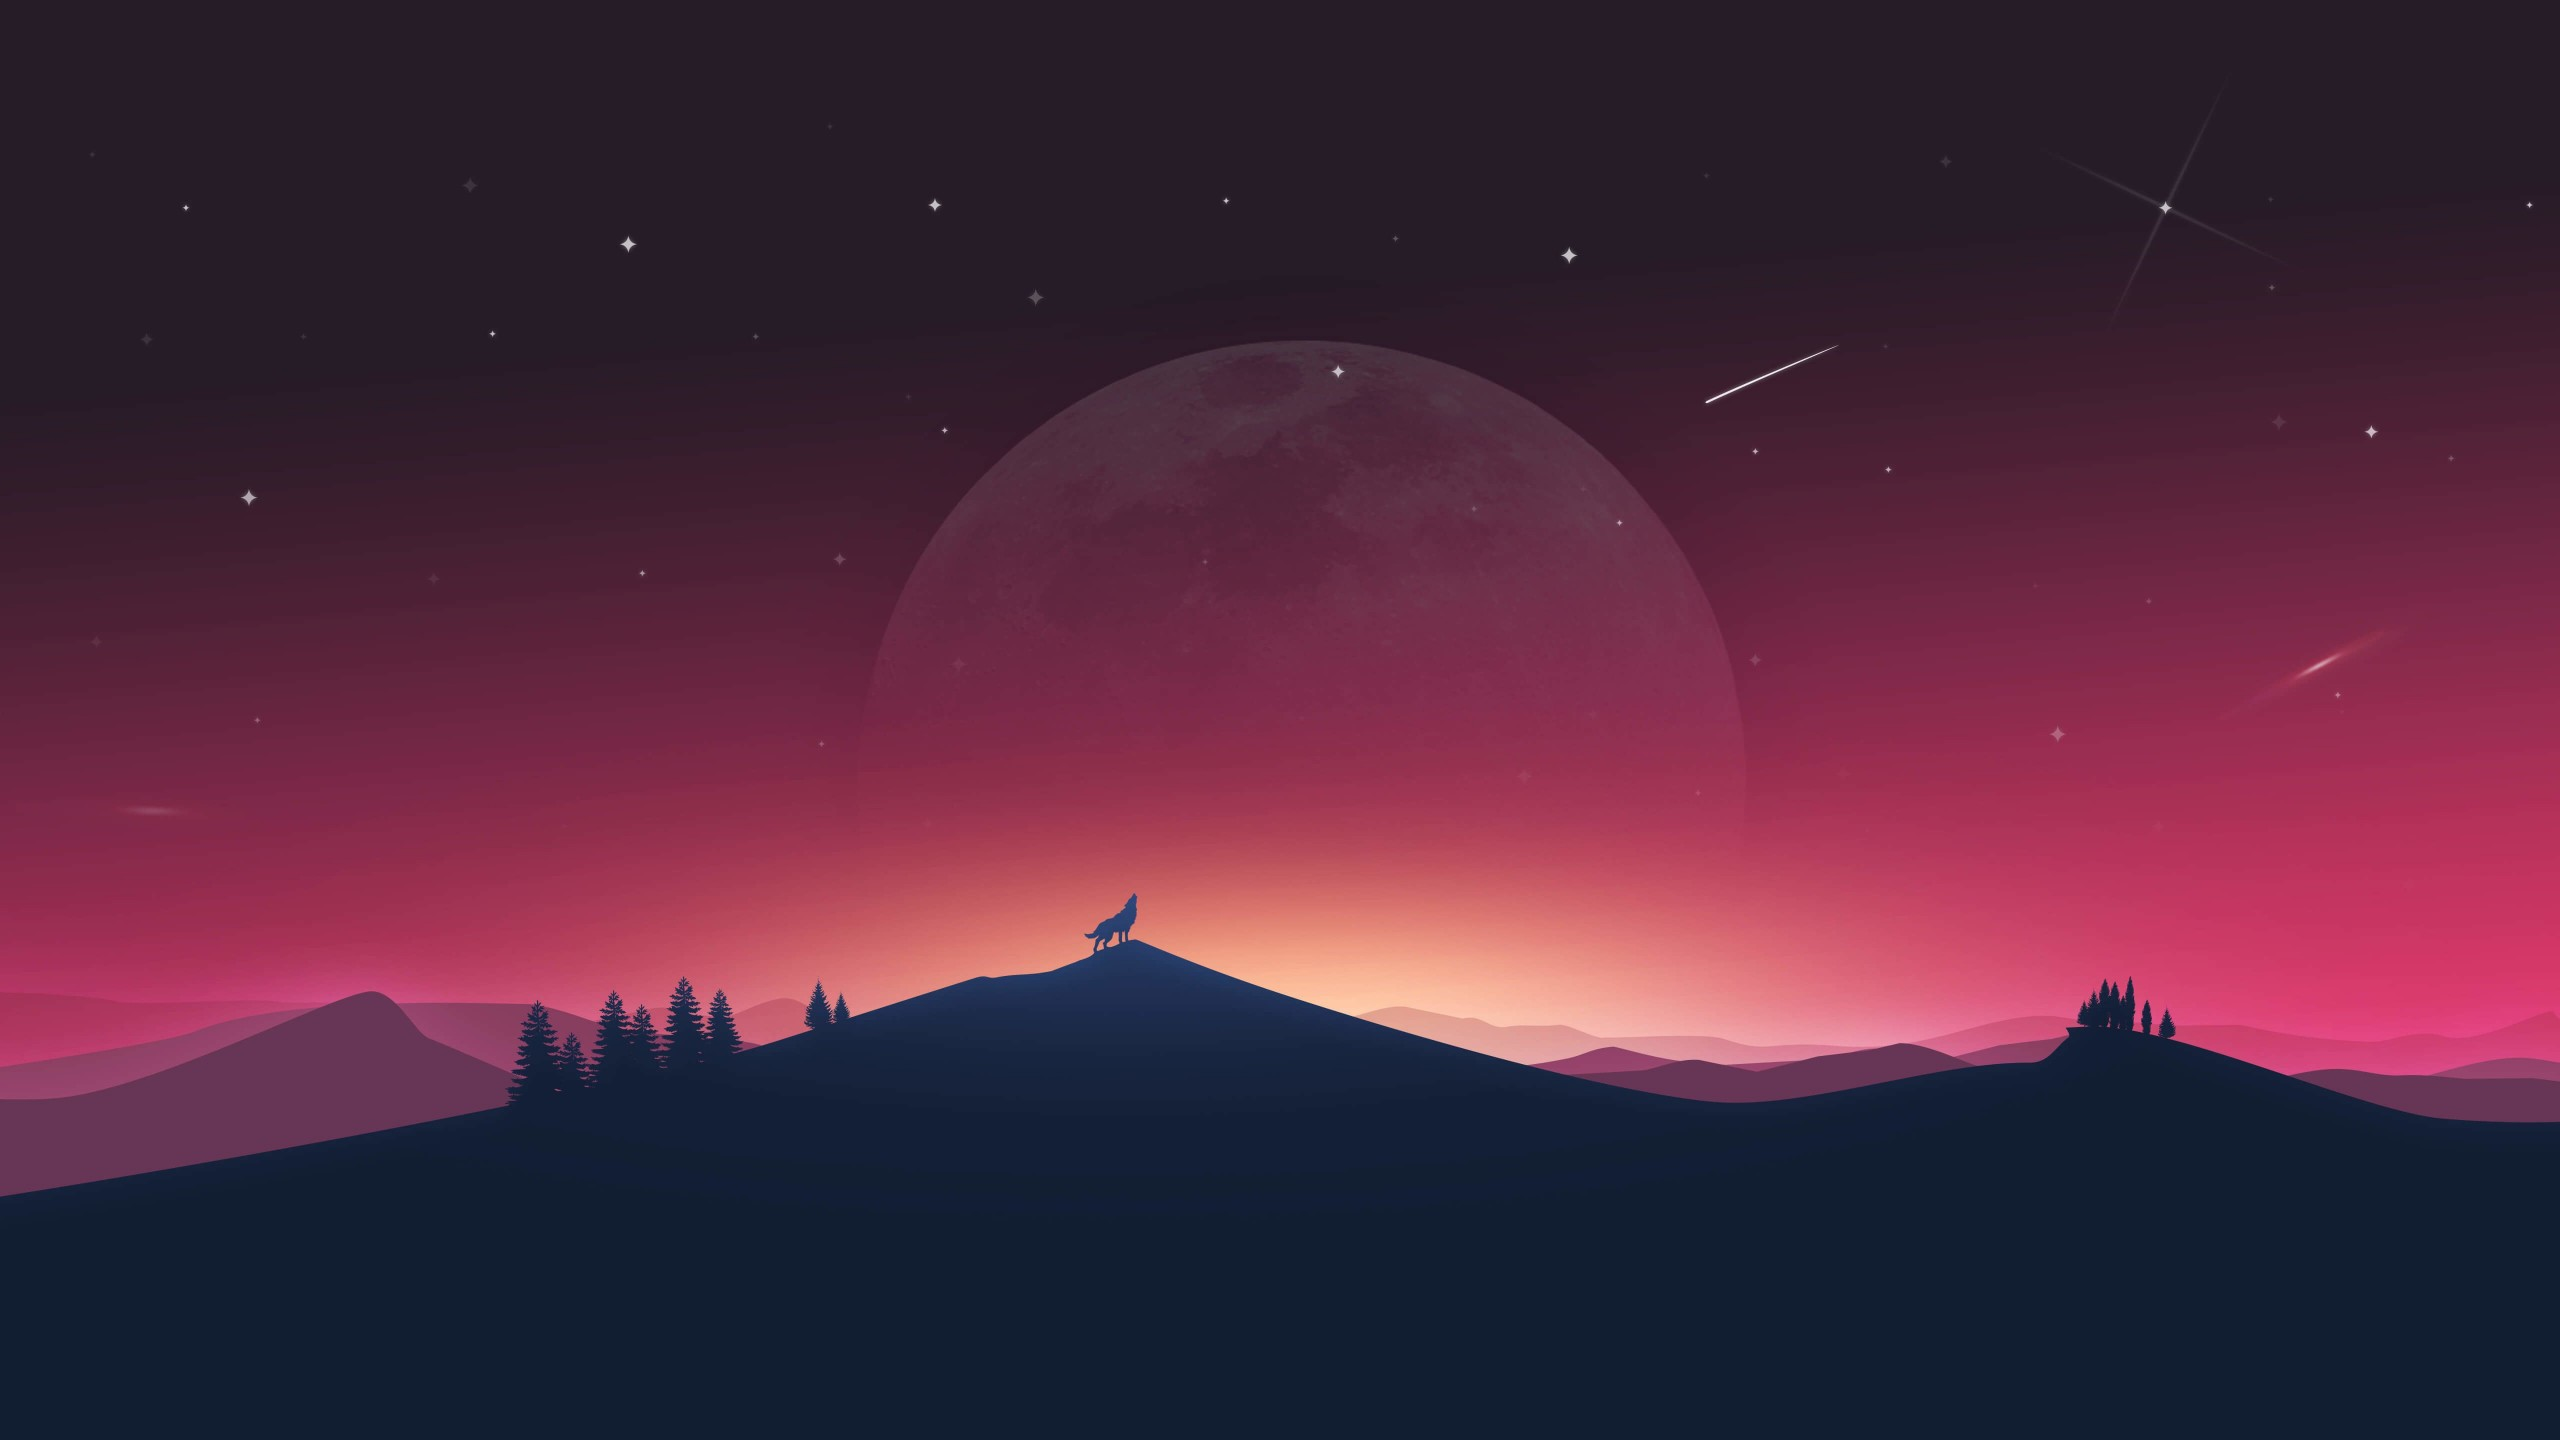 download wolf howling at the moon hd wallpaper for 2560 x